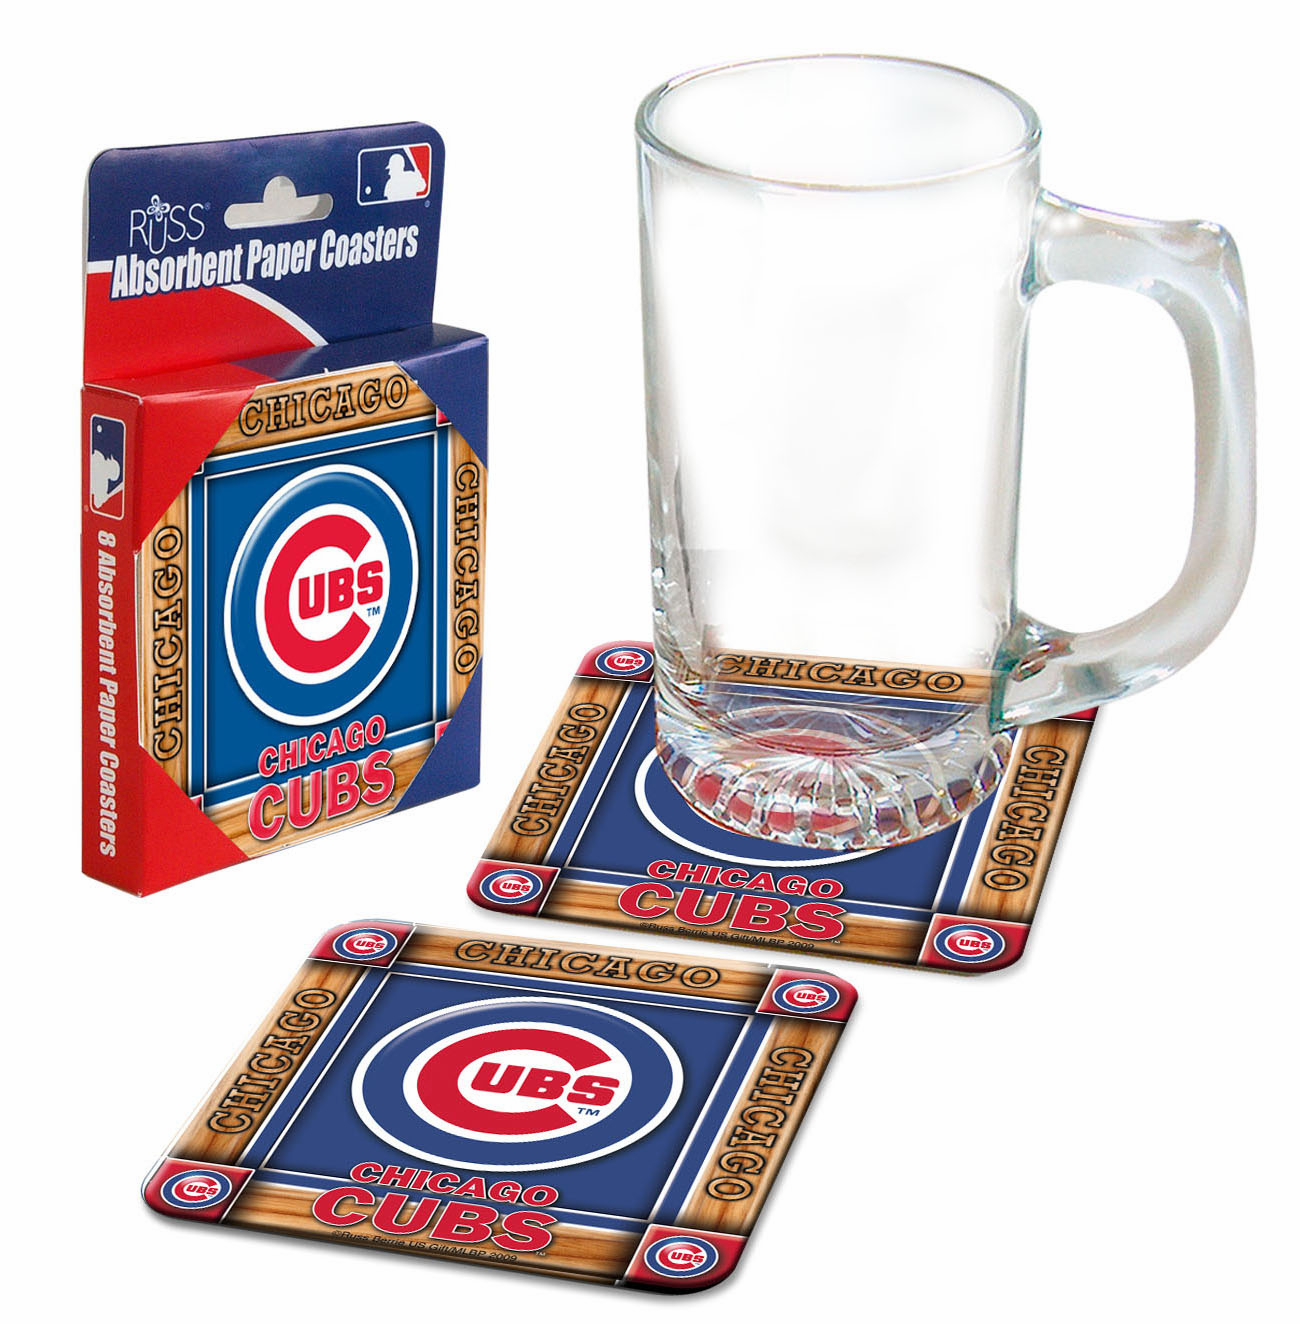 Chicago Cubs Absorbent Paper Coaster Set<br>ONLY 1 SET LEFT!